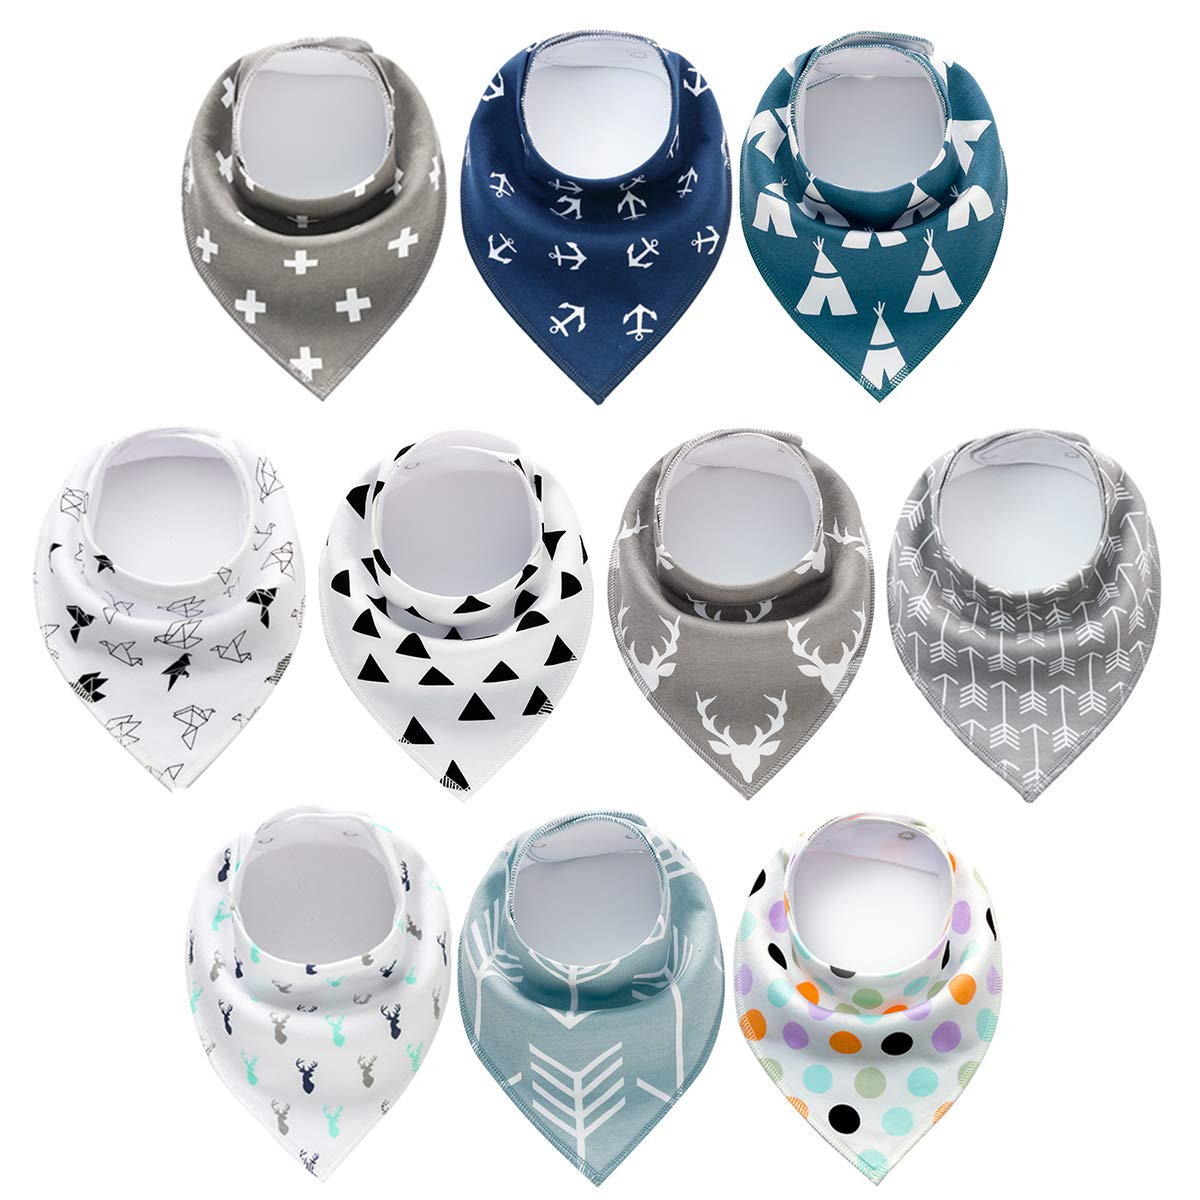 10 Pack Baby Bandana Drool Bib, 100% Cotton Baby Bibs, Unisex Gift Set Soft and Absorbent Bibs for Drooling and Teething